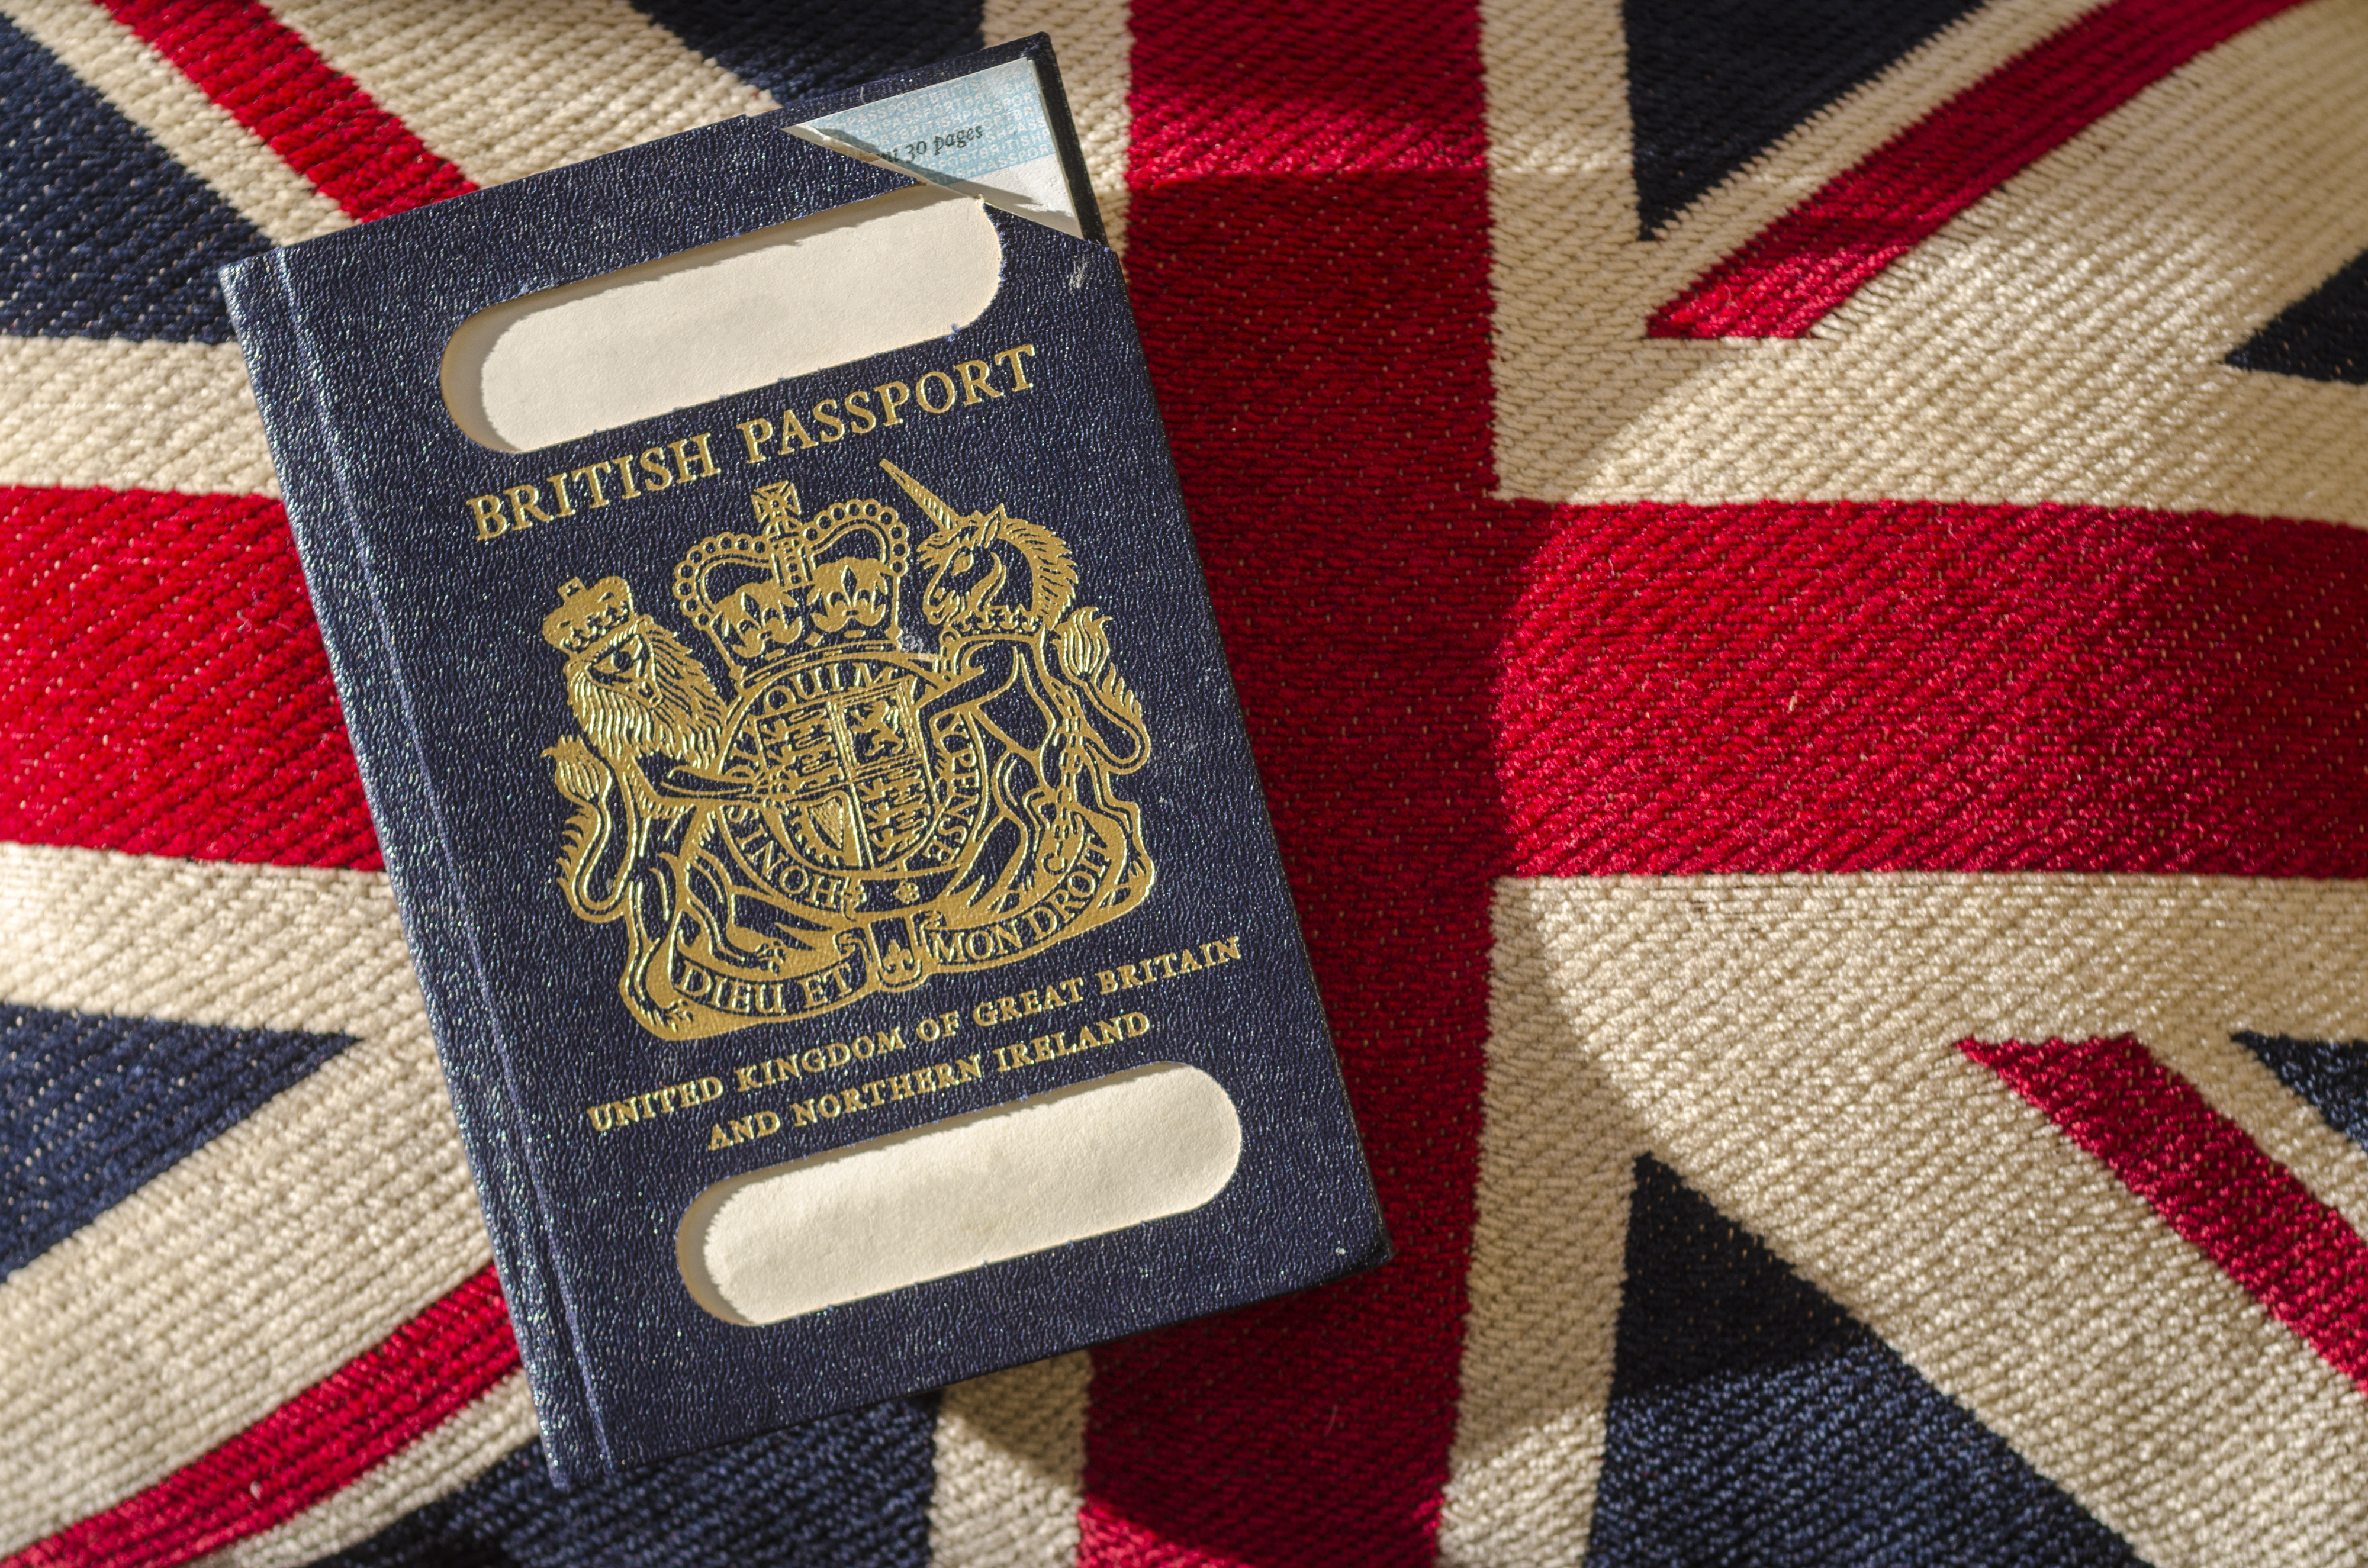 Expired blue passport